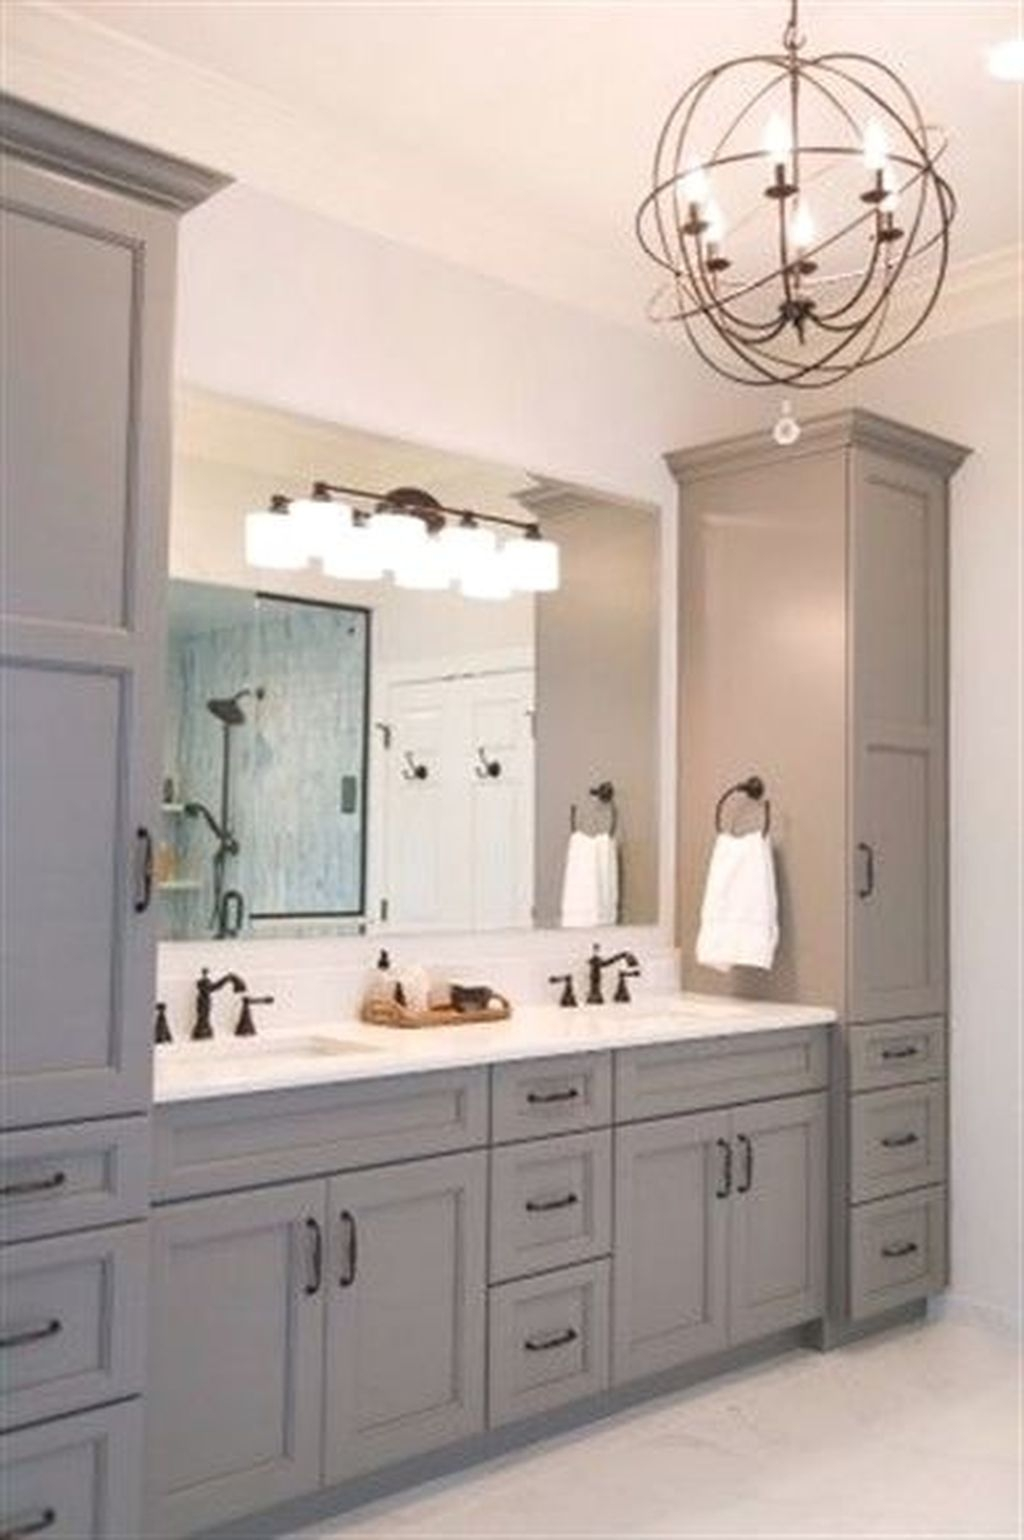 Astonishing Bathroom Design Ideas With Amazing Storage 31